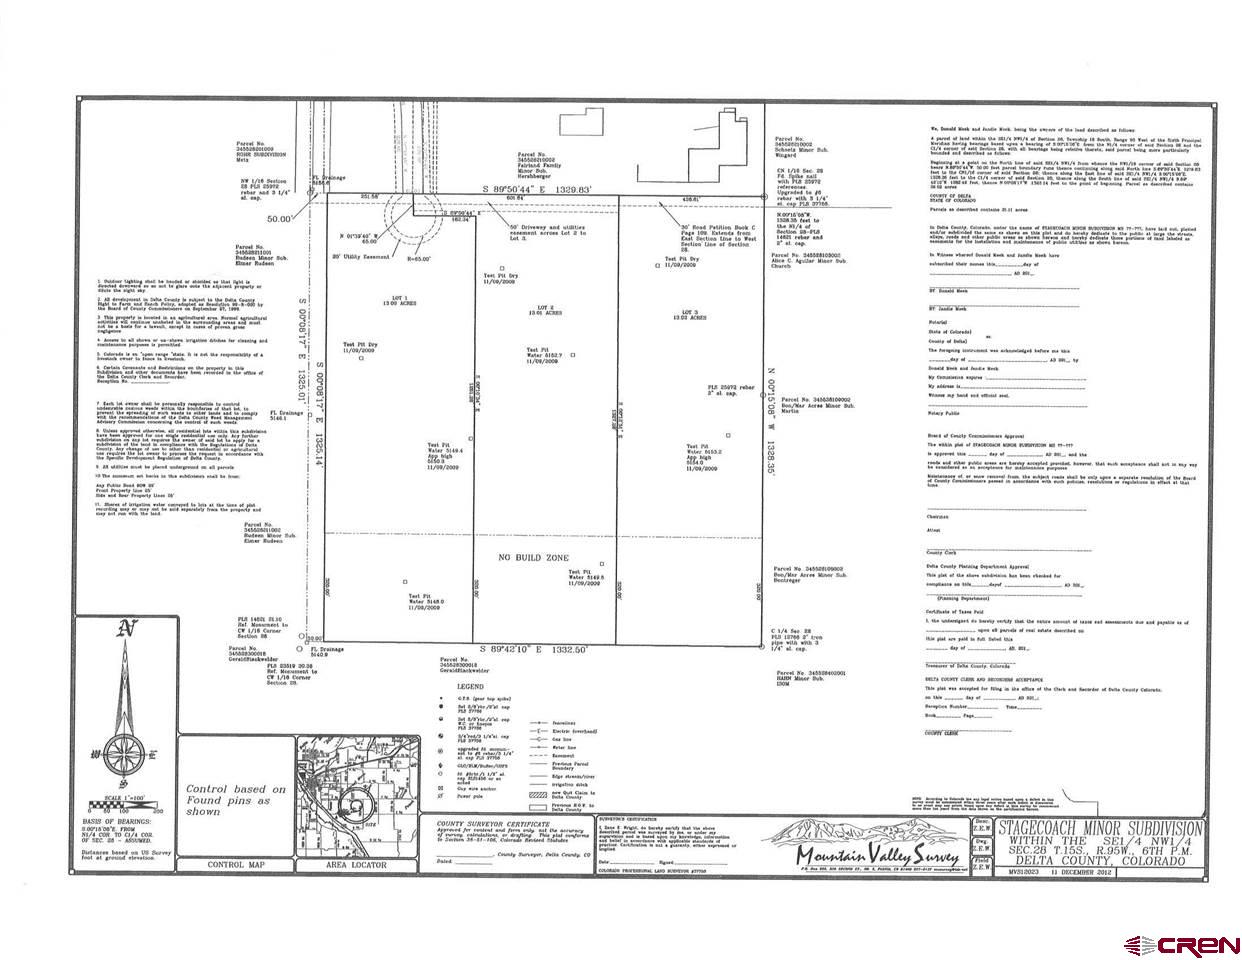 Attention Developers!!! Sellers motivated!! Great solar farm potential. This is an approved paper subdivision consisting of three 13 acre lots. Could possibly be subdivided into more lots with County approval. Close to Delta High School, views of Sweitzer Lake, great location!